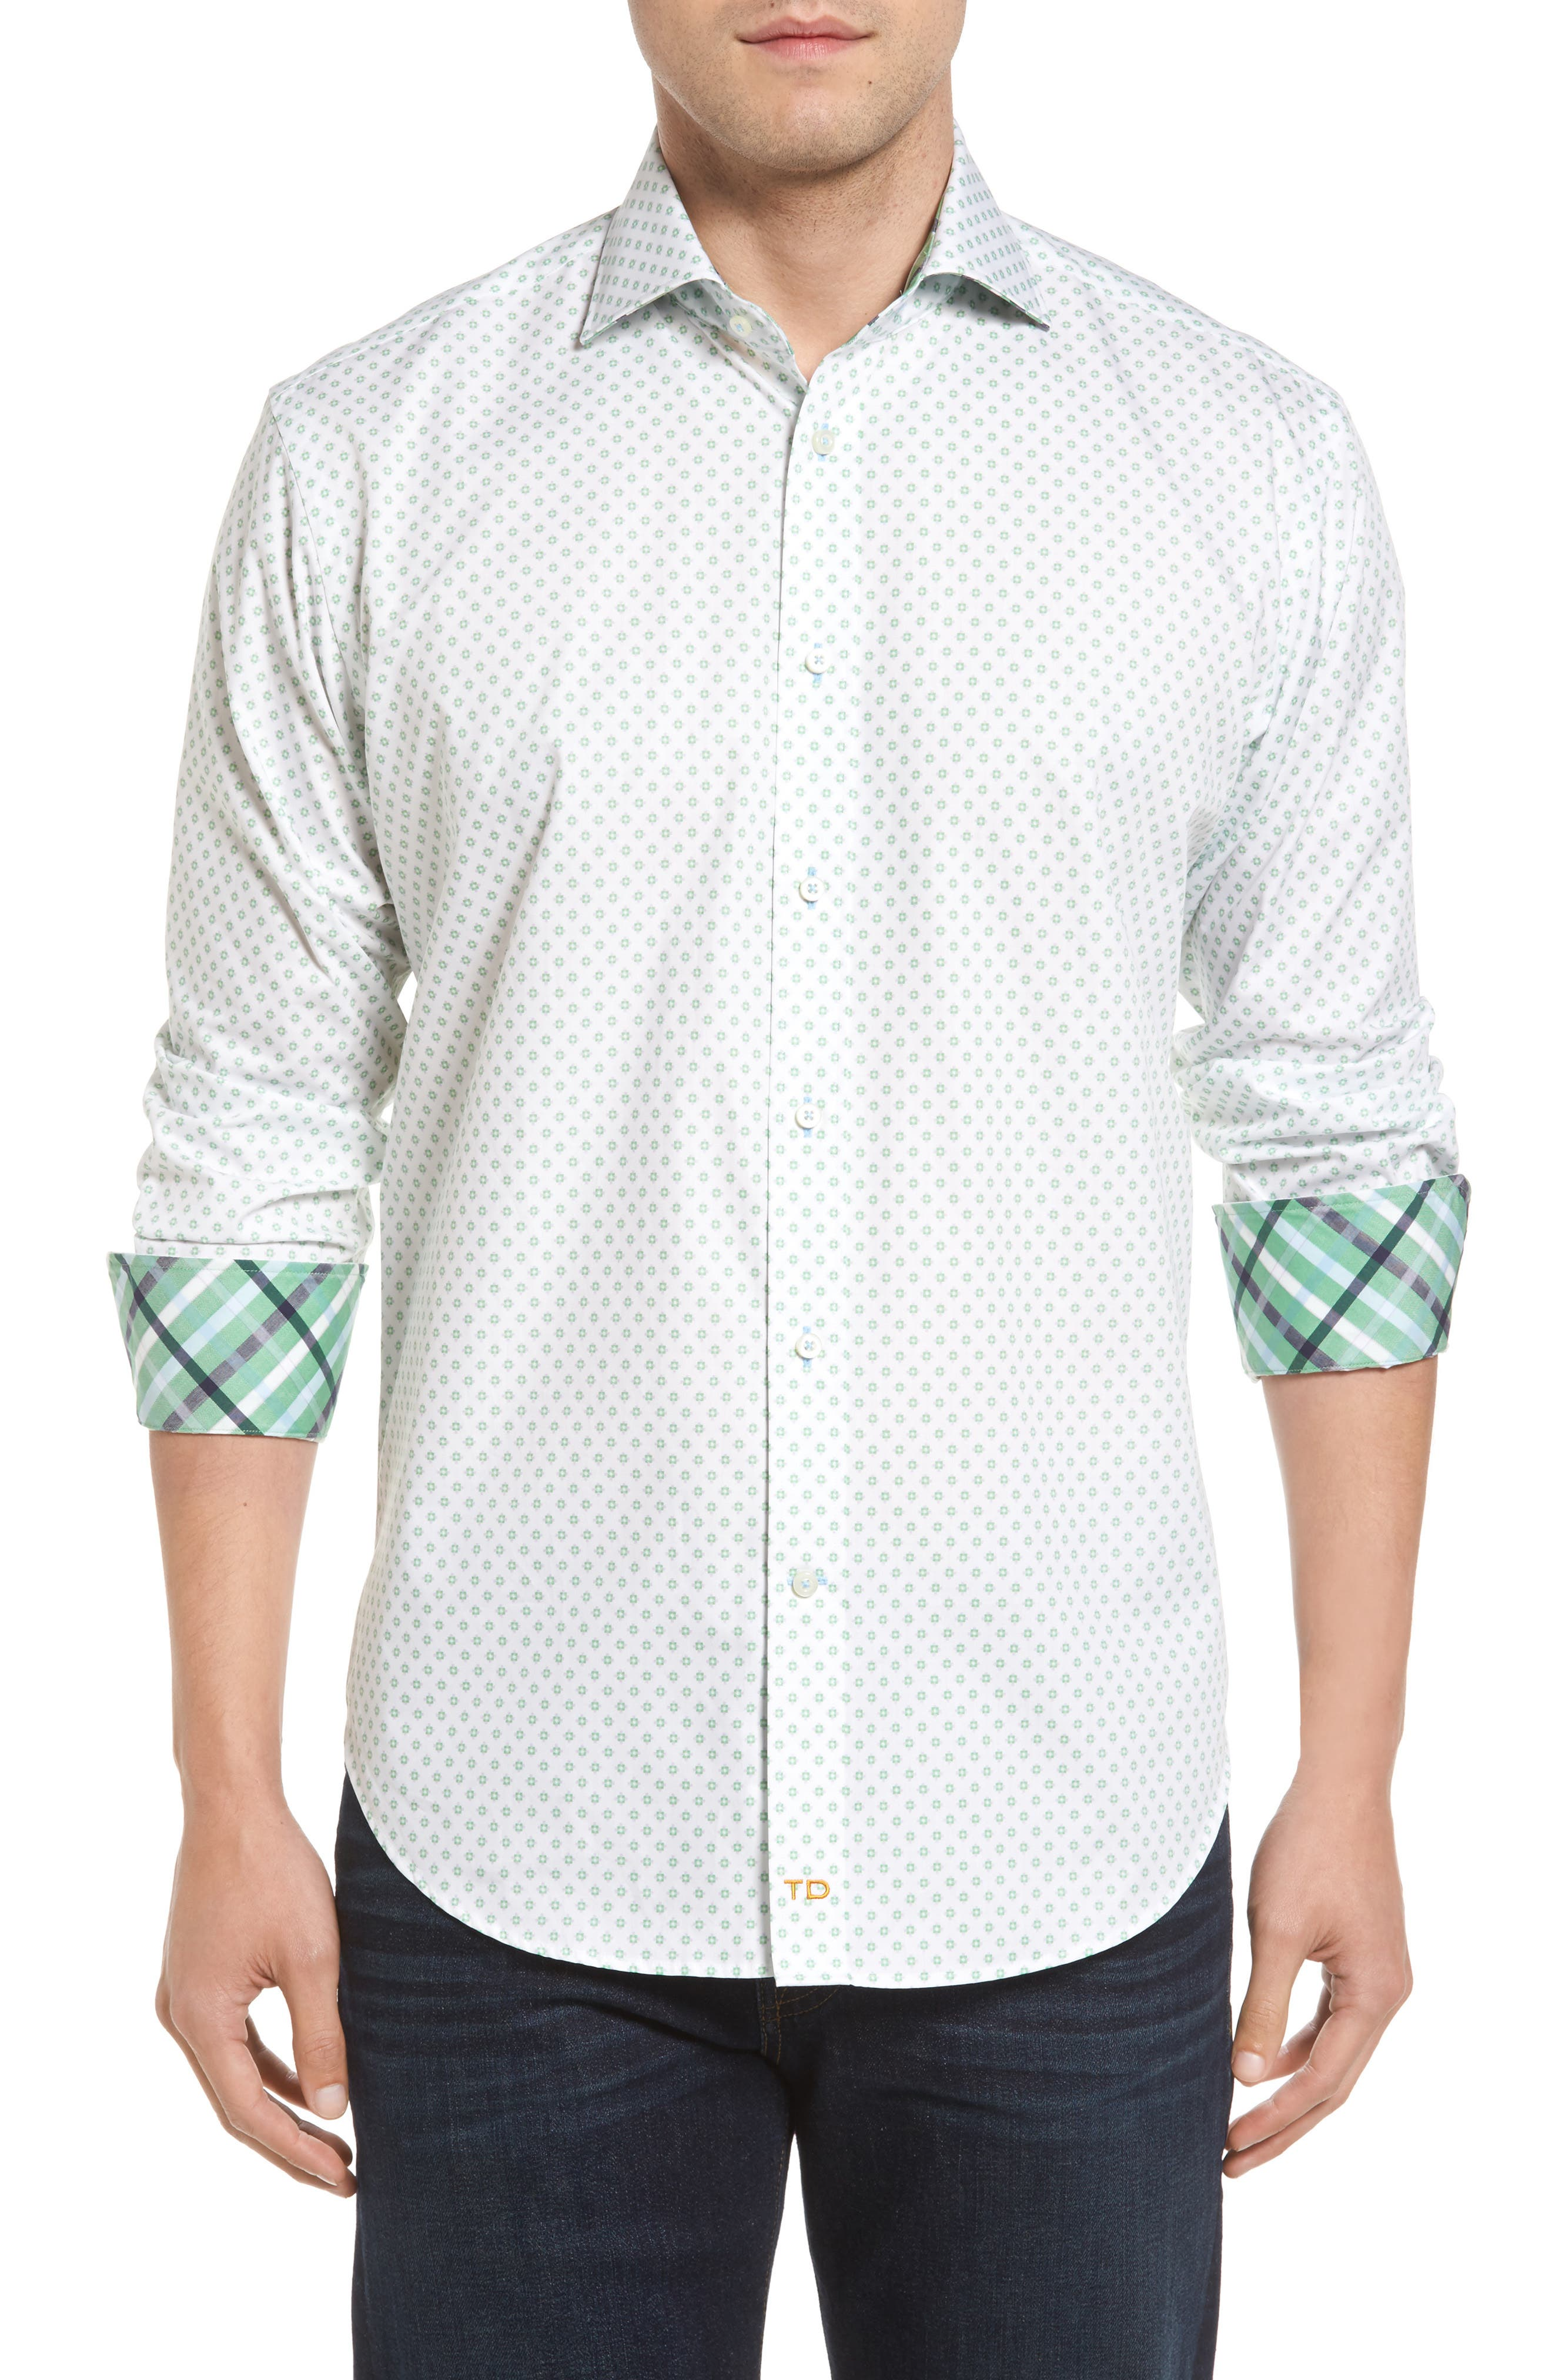 Main Image - Thomas Dean Classic Fit Neat Floral Print Sport Shirt